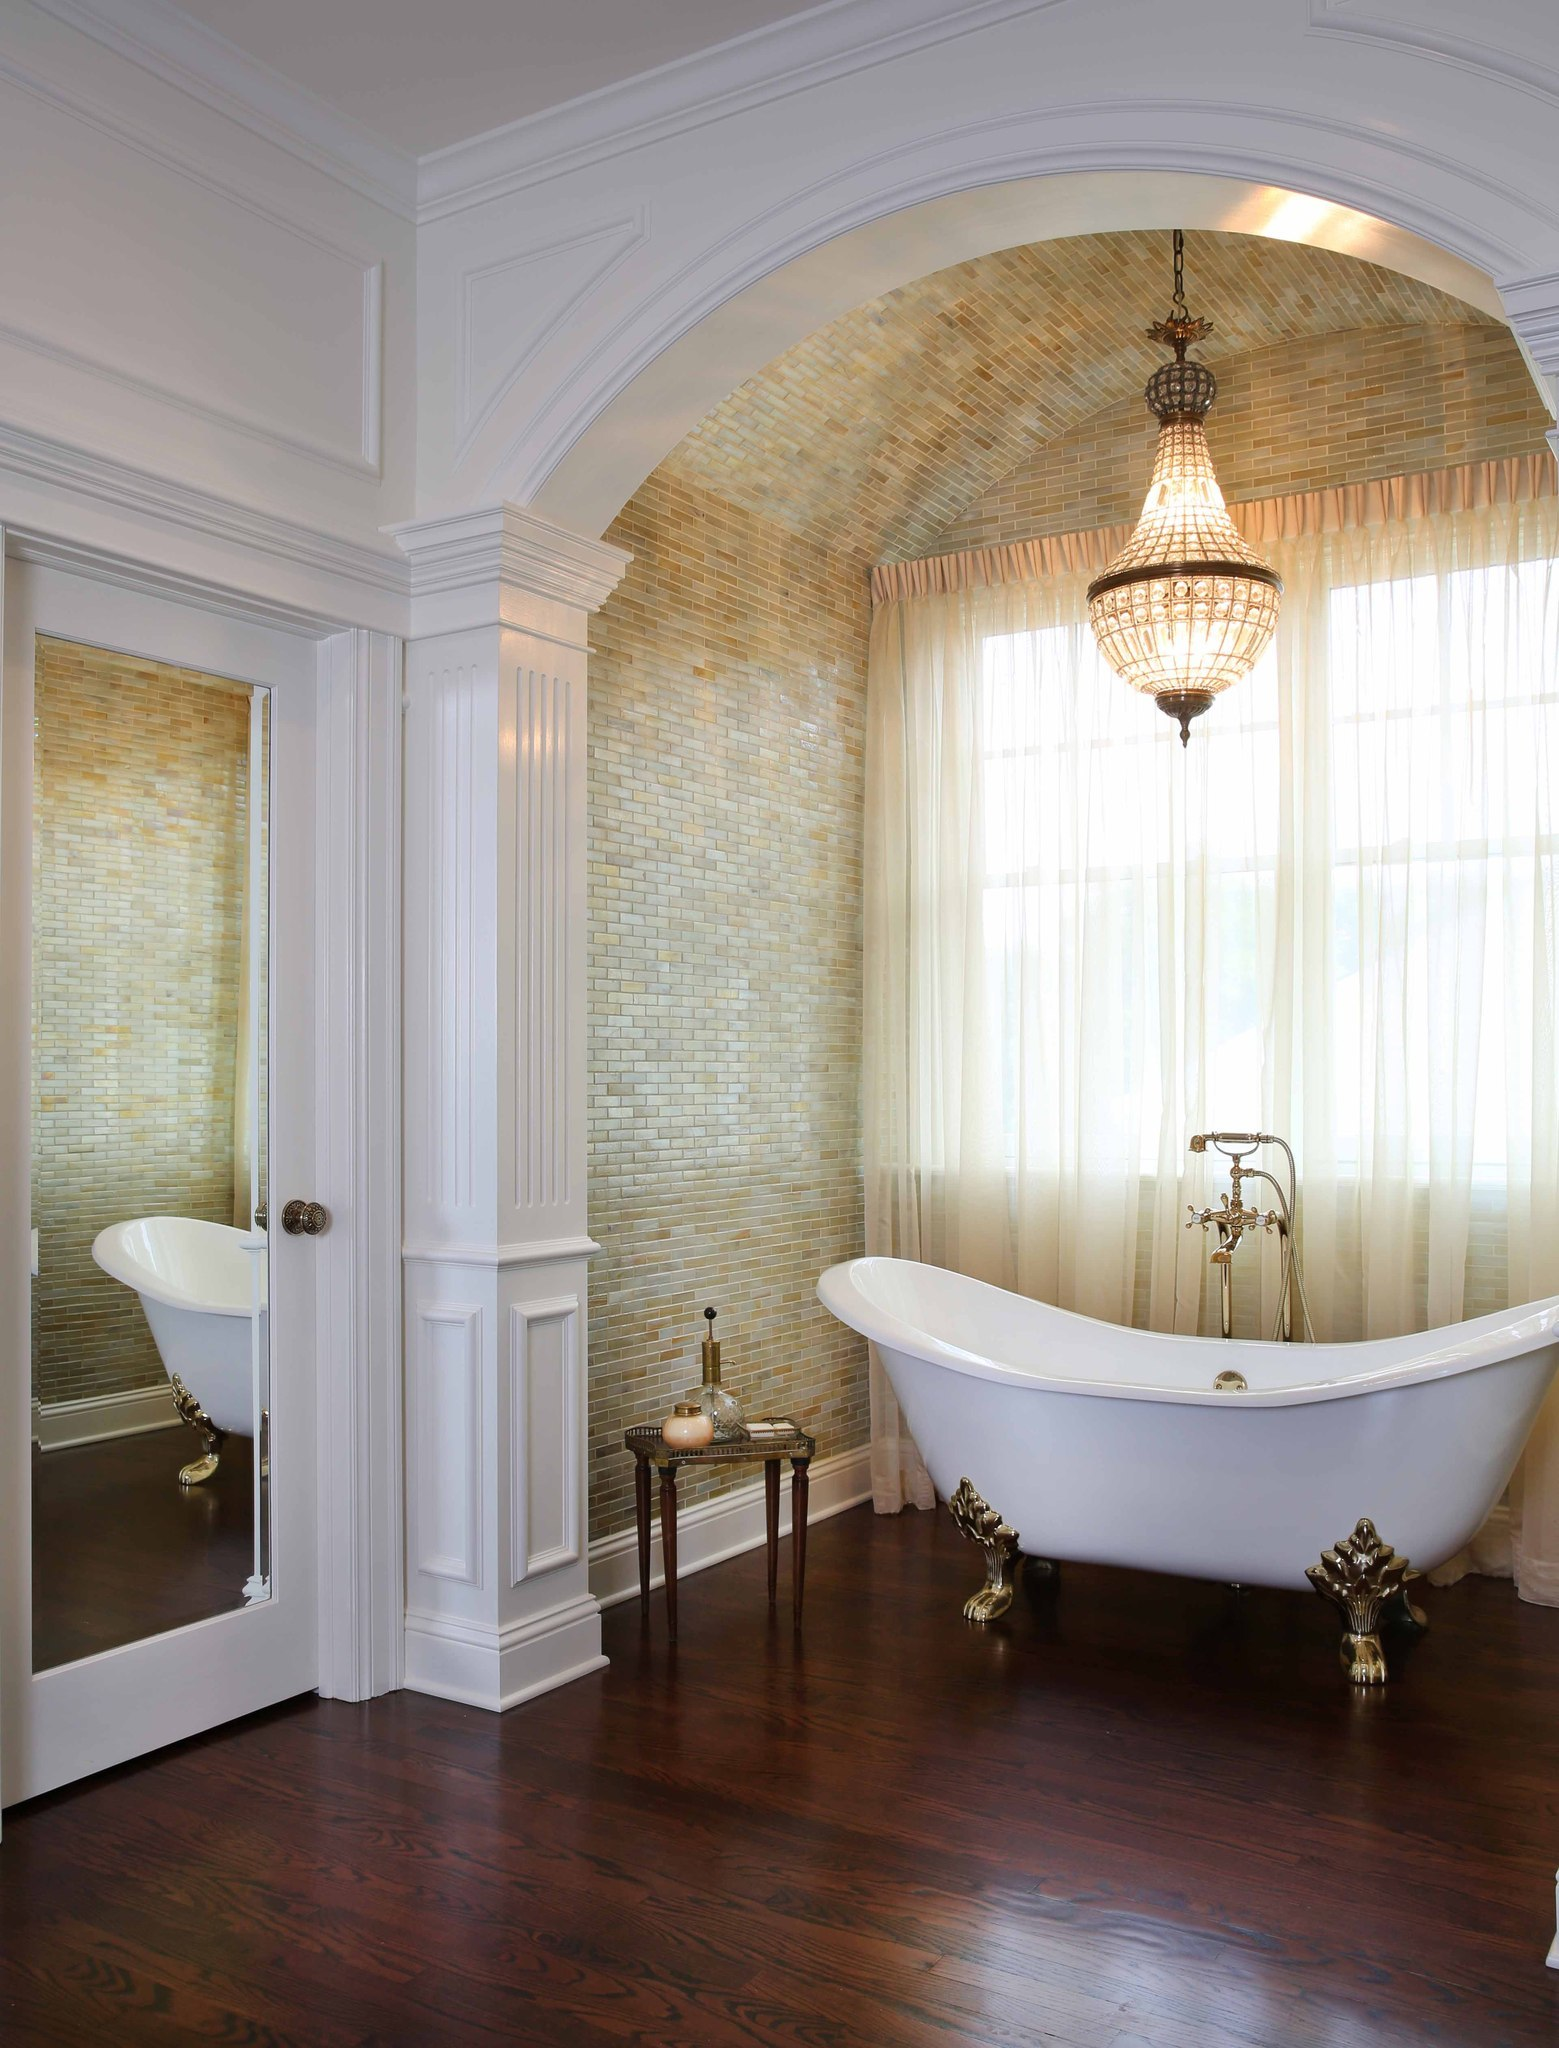 Top 10 bathroom design trends for 2014 the doings la grange for Bathroom trends